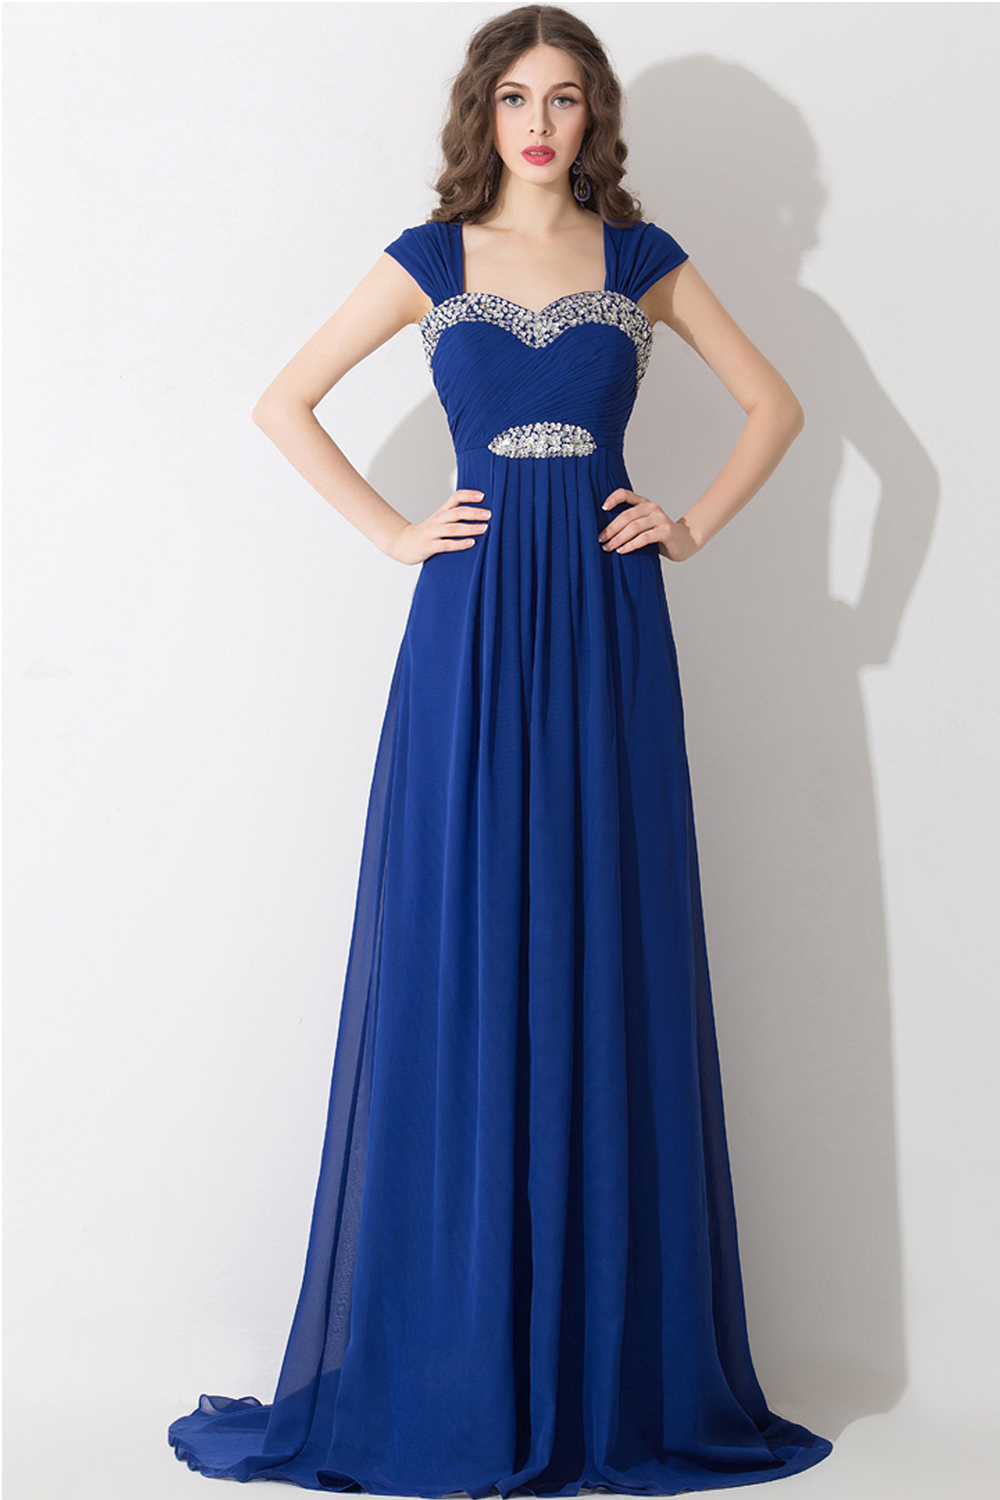 A-Line/Princess Sweetheart Neckline Floor Length Chiffon Prom Dress with Diamonds